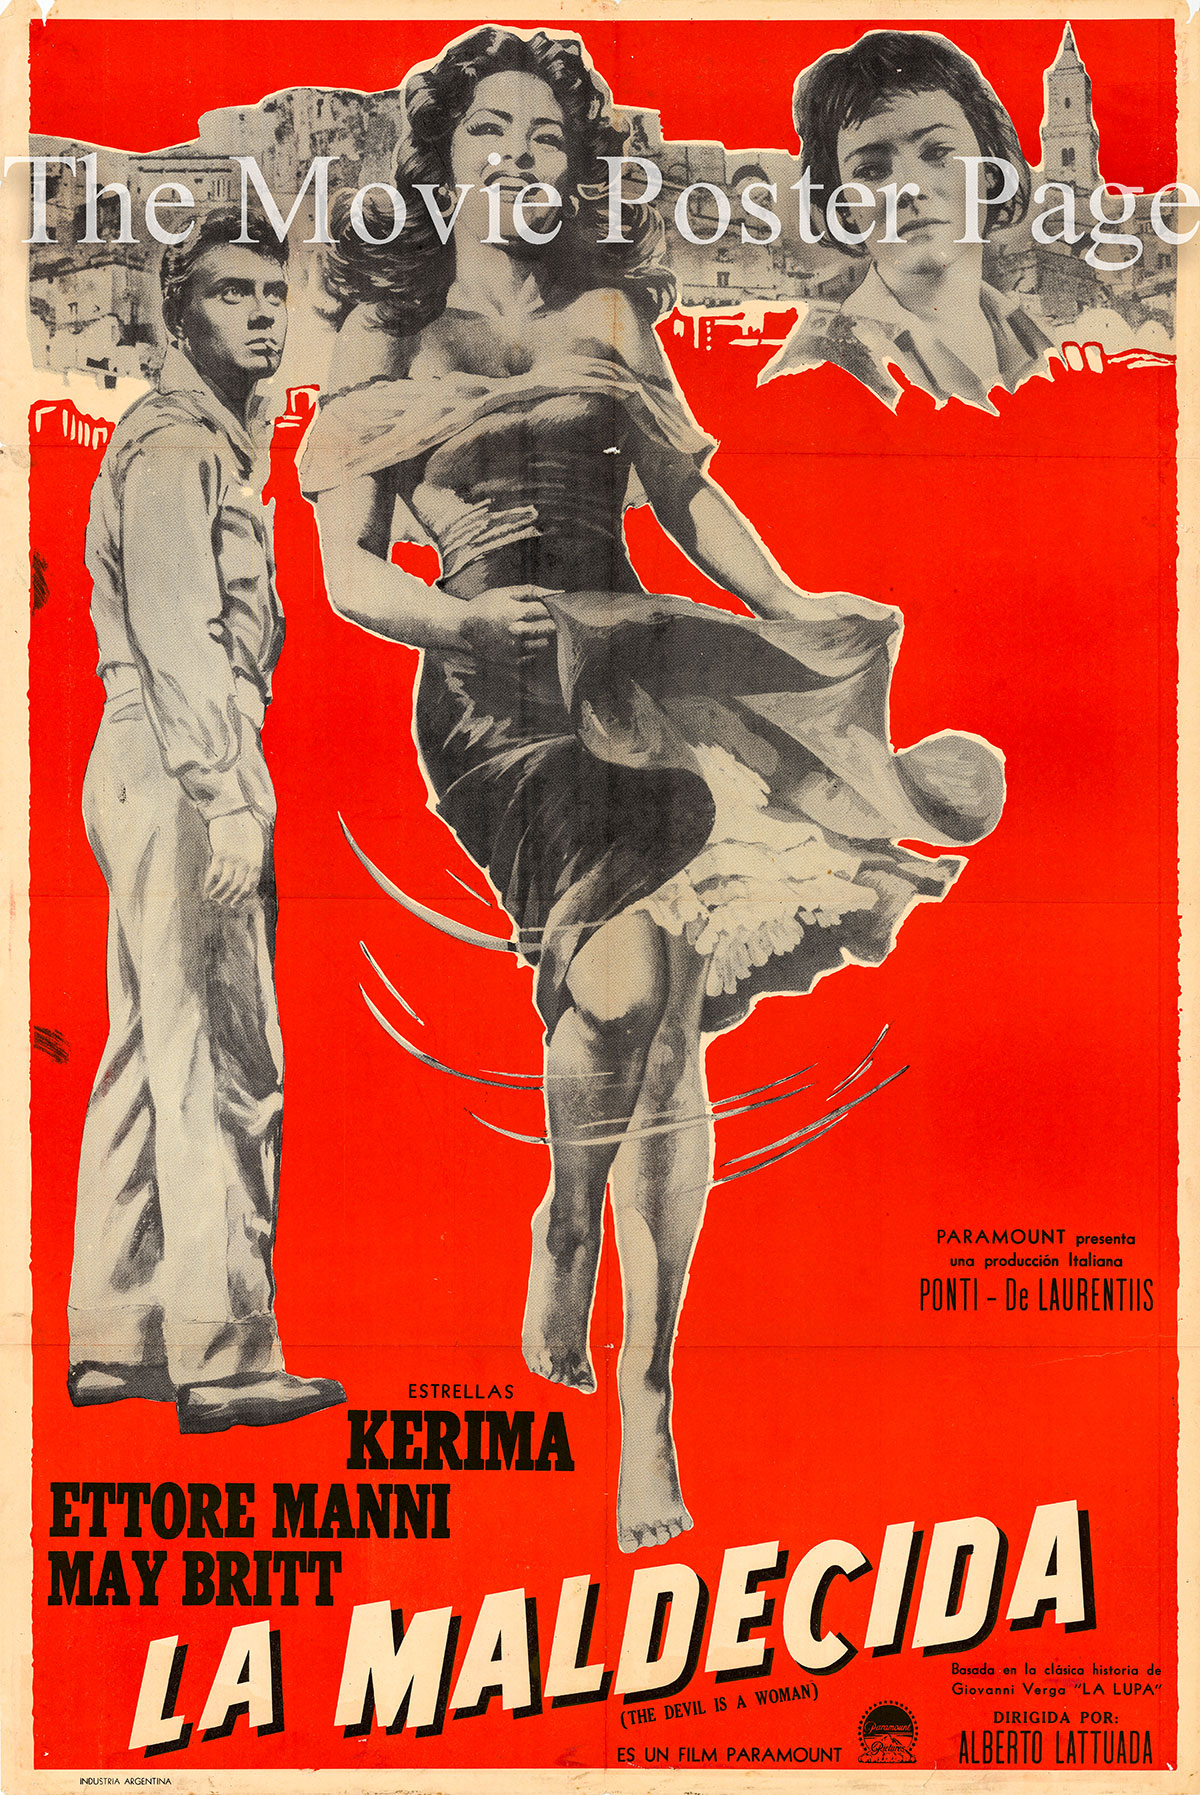 Pictured is an Argentine one-sheet poster for the 1955 Carmine Gallone film Fatal Desire starring May Britt as Santuzza.